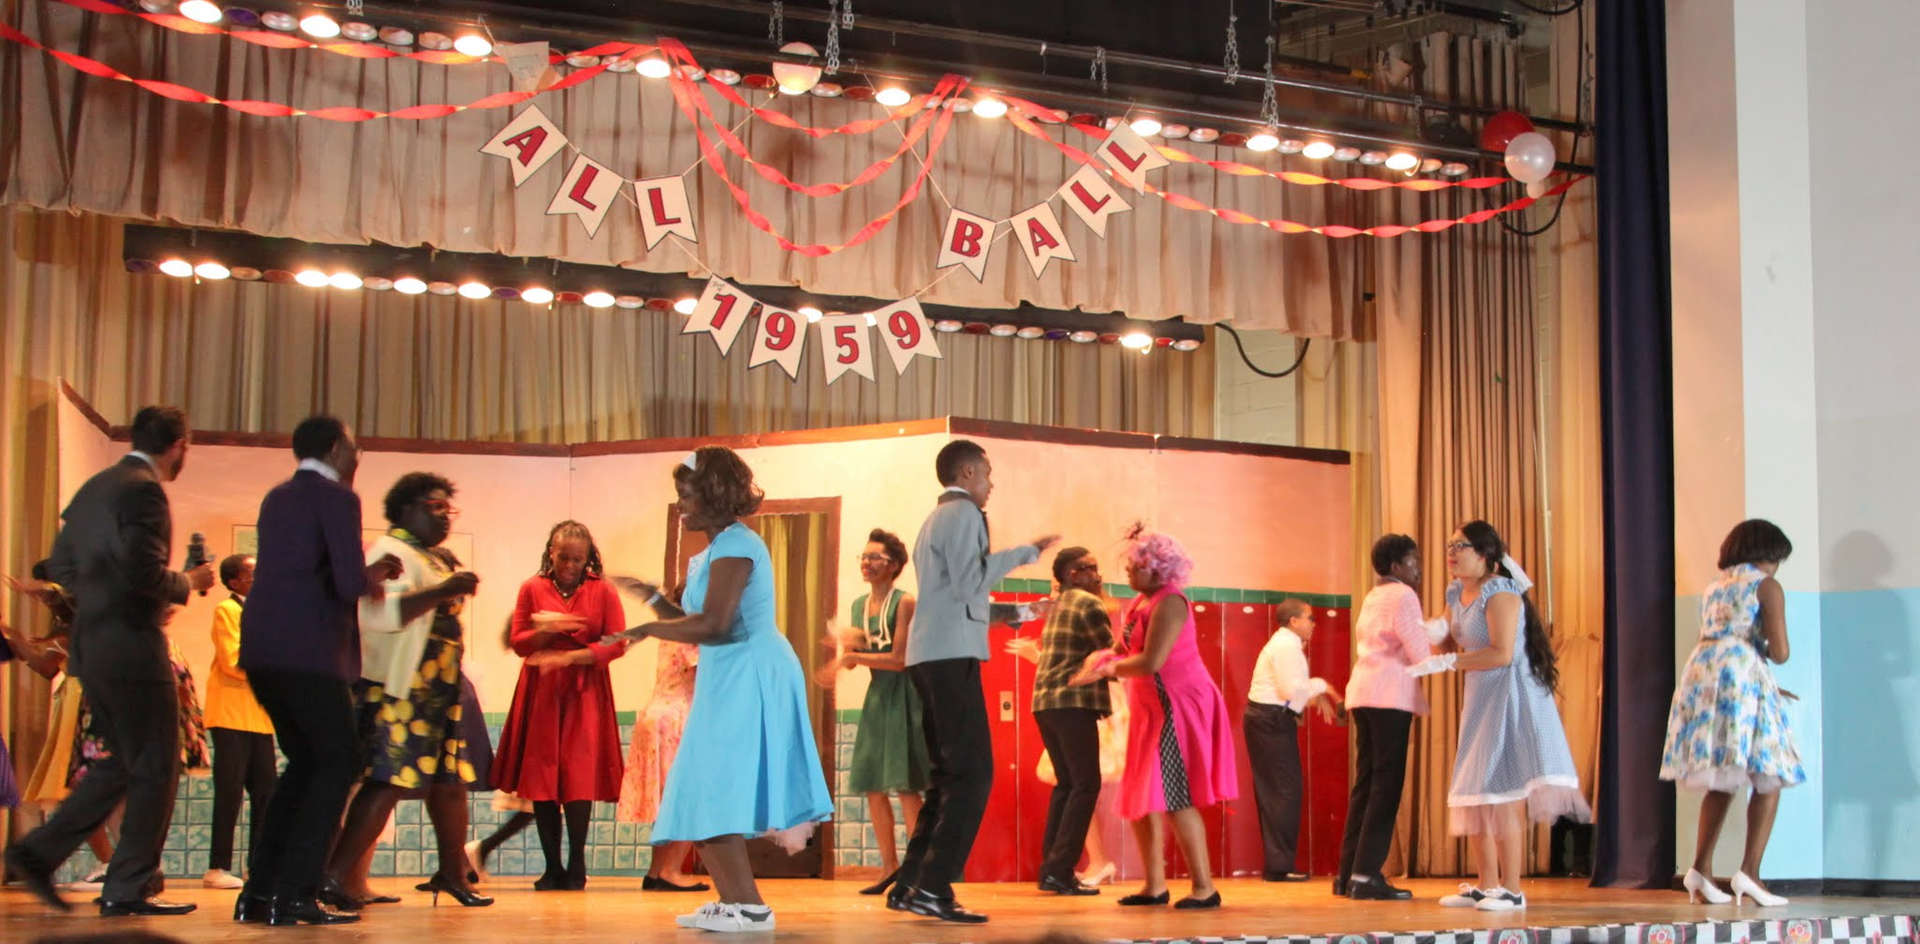 Students dancing on stage together